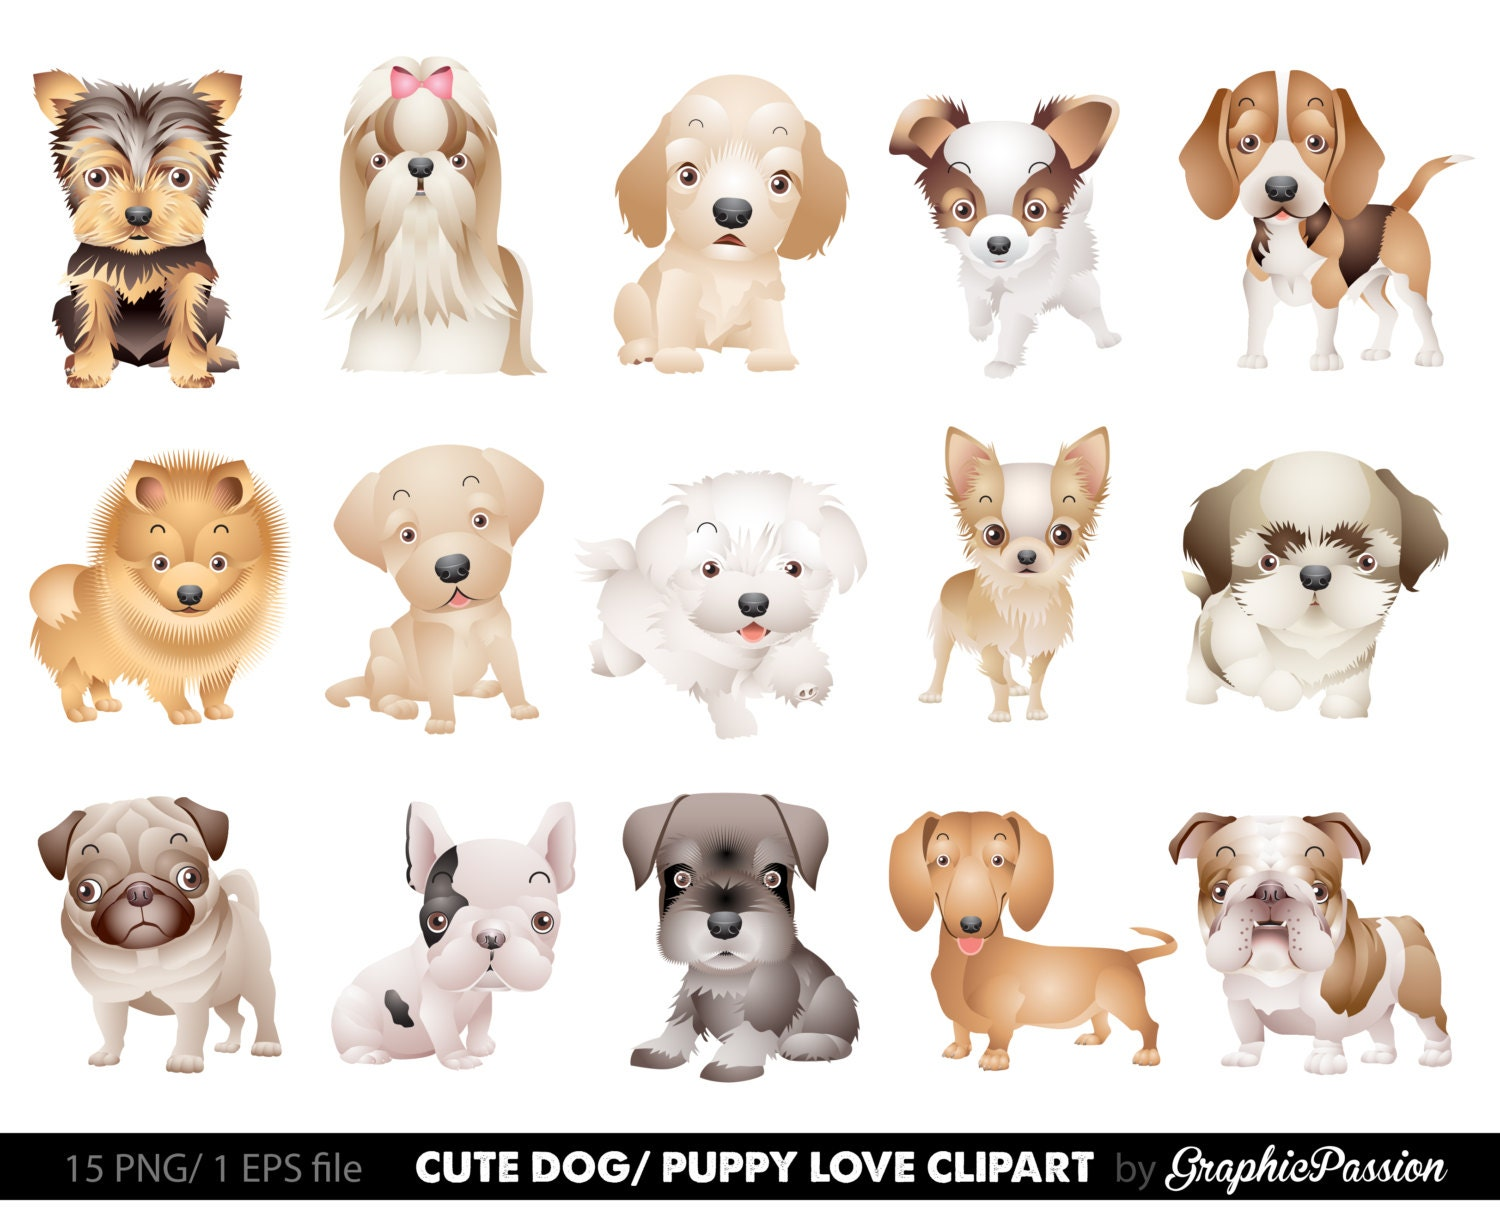 dog clipart puppy clipart cute dogs clip art puppy clipart dog illustration for personal and commercial use instant download rh etsy com cute husky puppy clipart cute puppy dog clipart